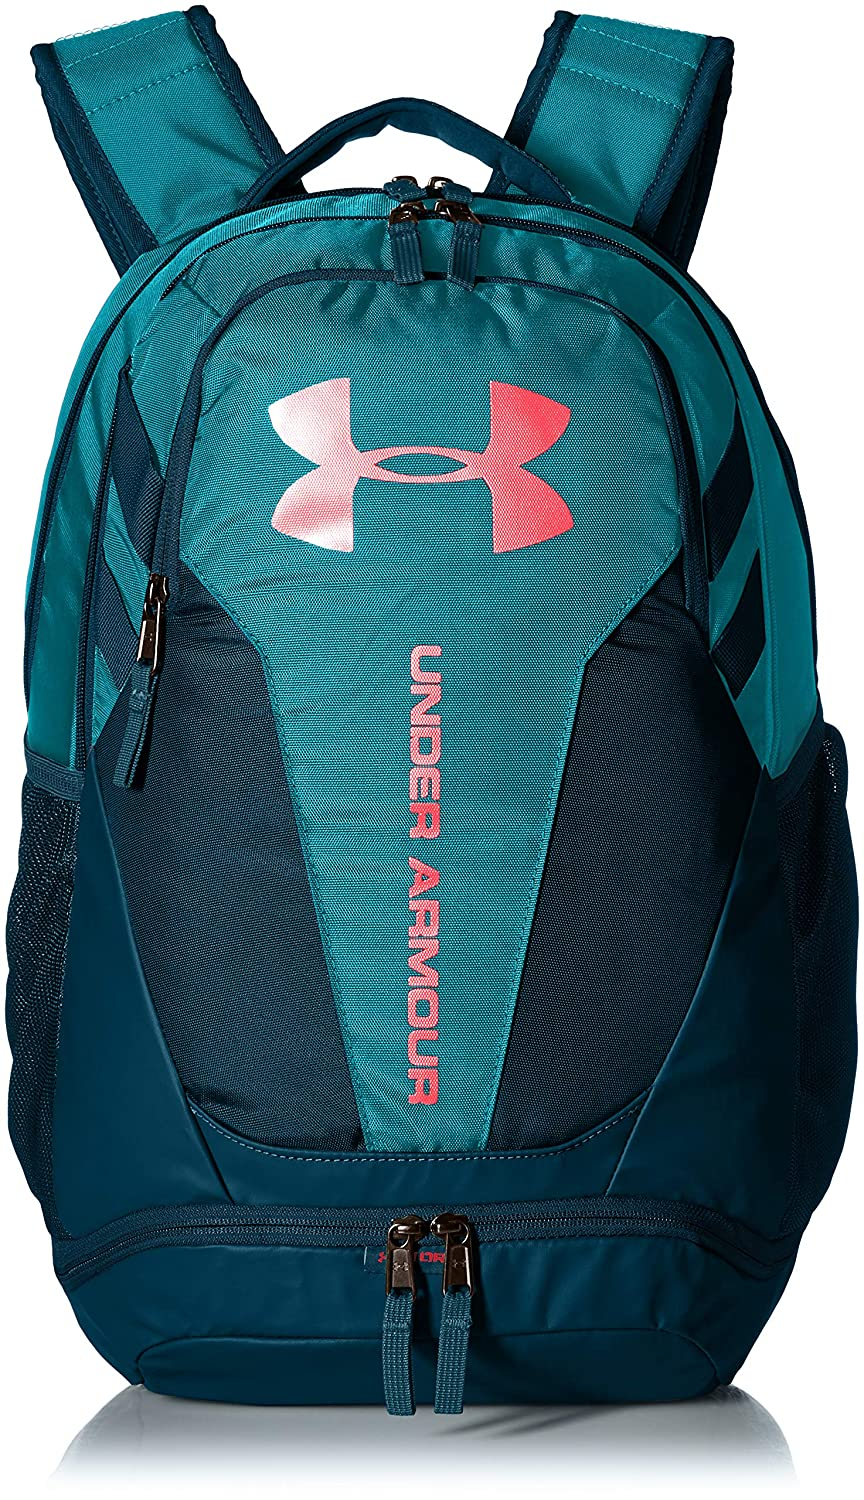 Under Armour UA Hustle 3.0 Mochila, Unisex Adulto, Azul (Deceit/Techno Teal/Magma Orange 439), Talla única: Amazon.es: Deportes y aire libre